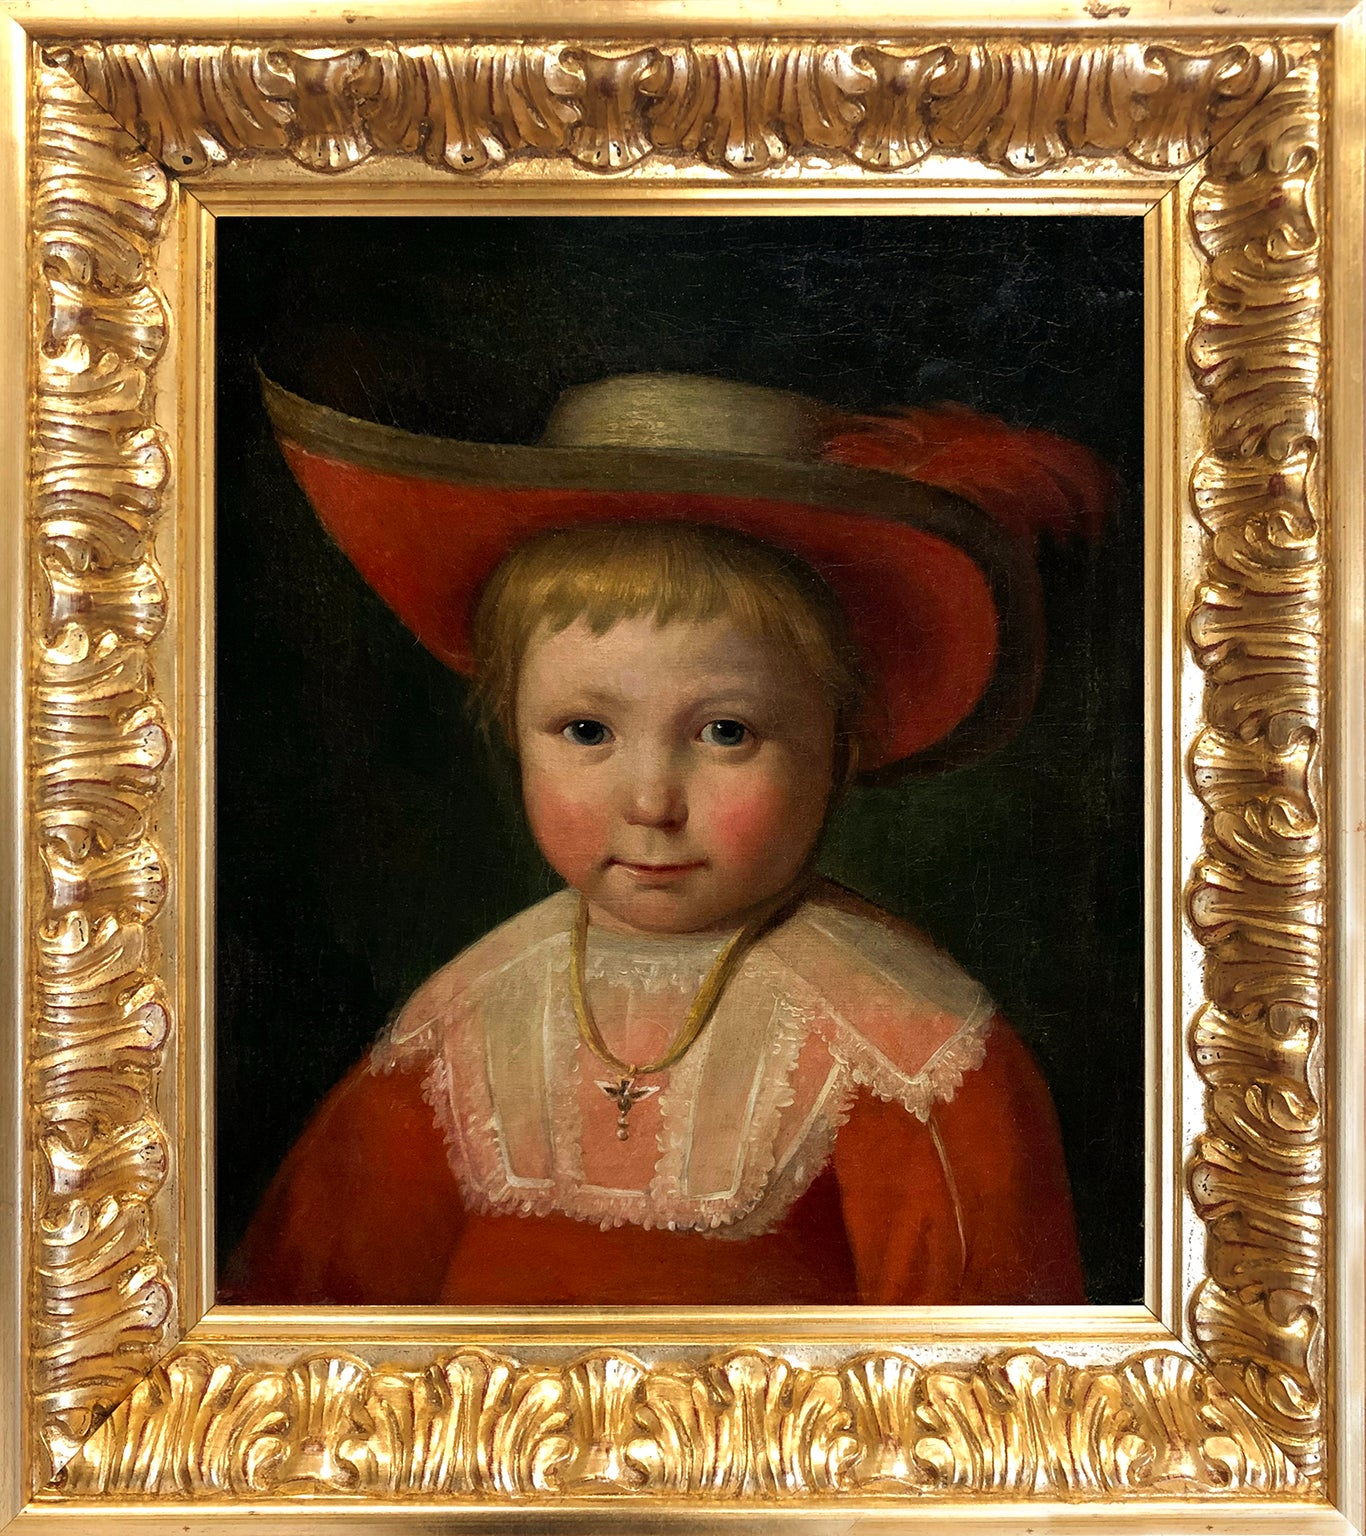 After Jacob Gerritszoon Cuyp - Portrait of a Child - Early 17th Century